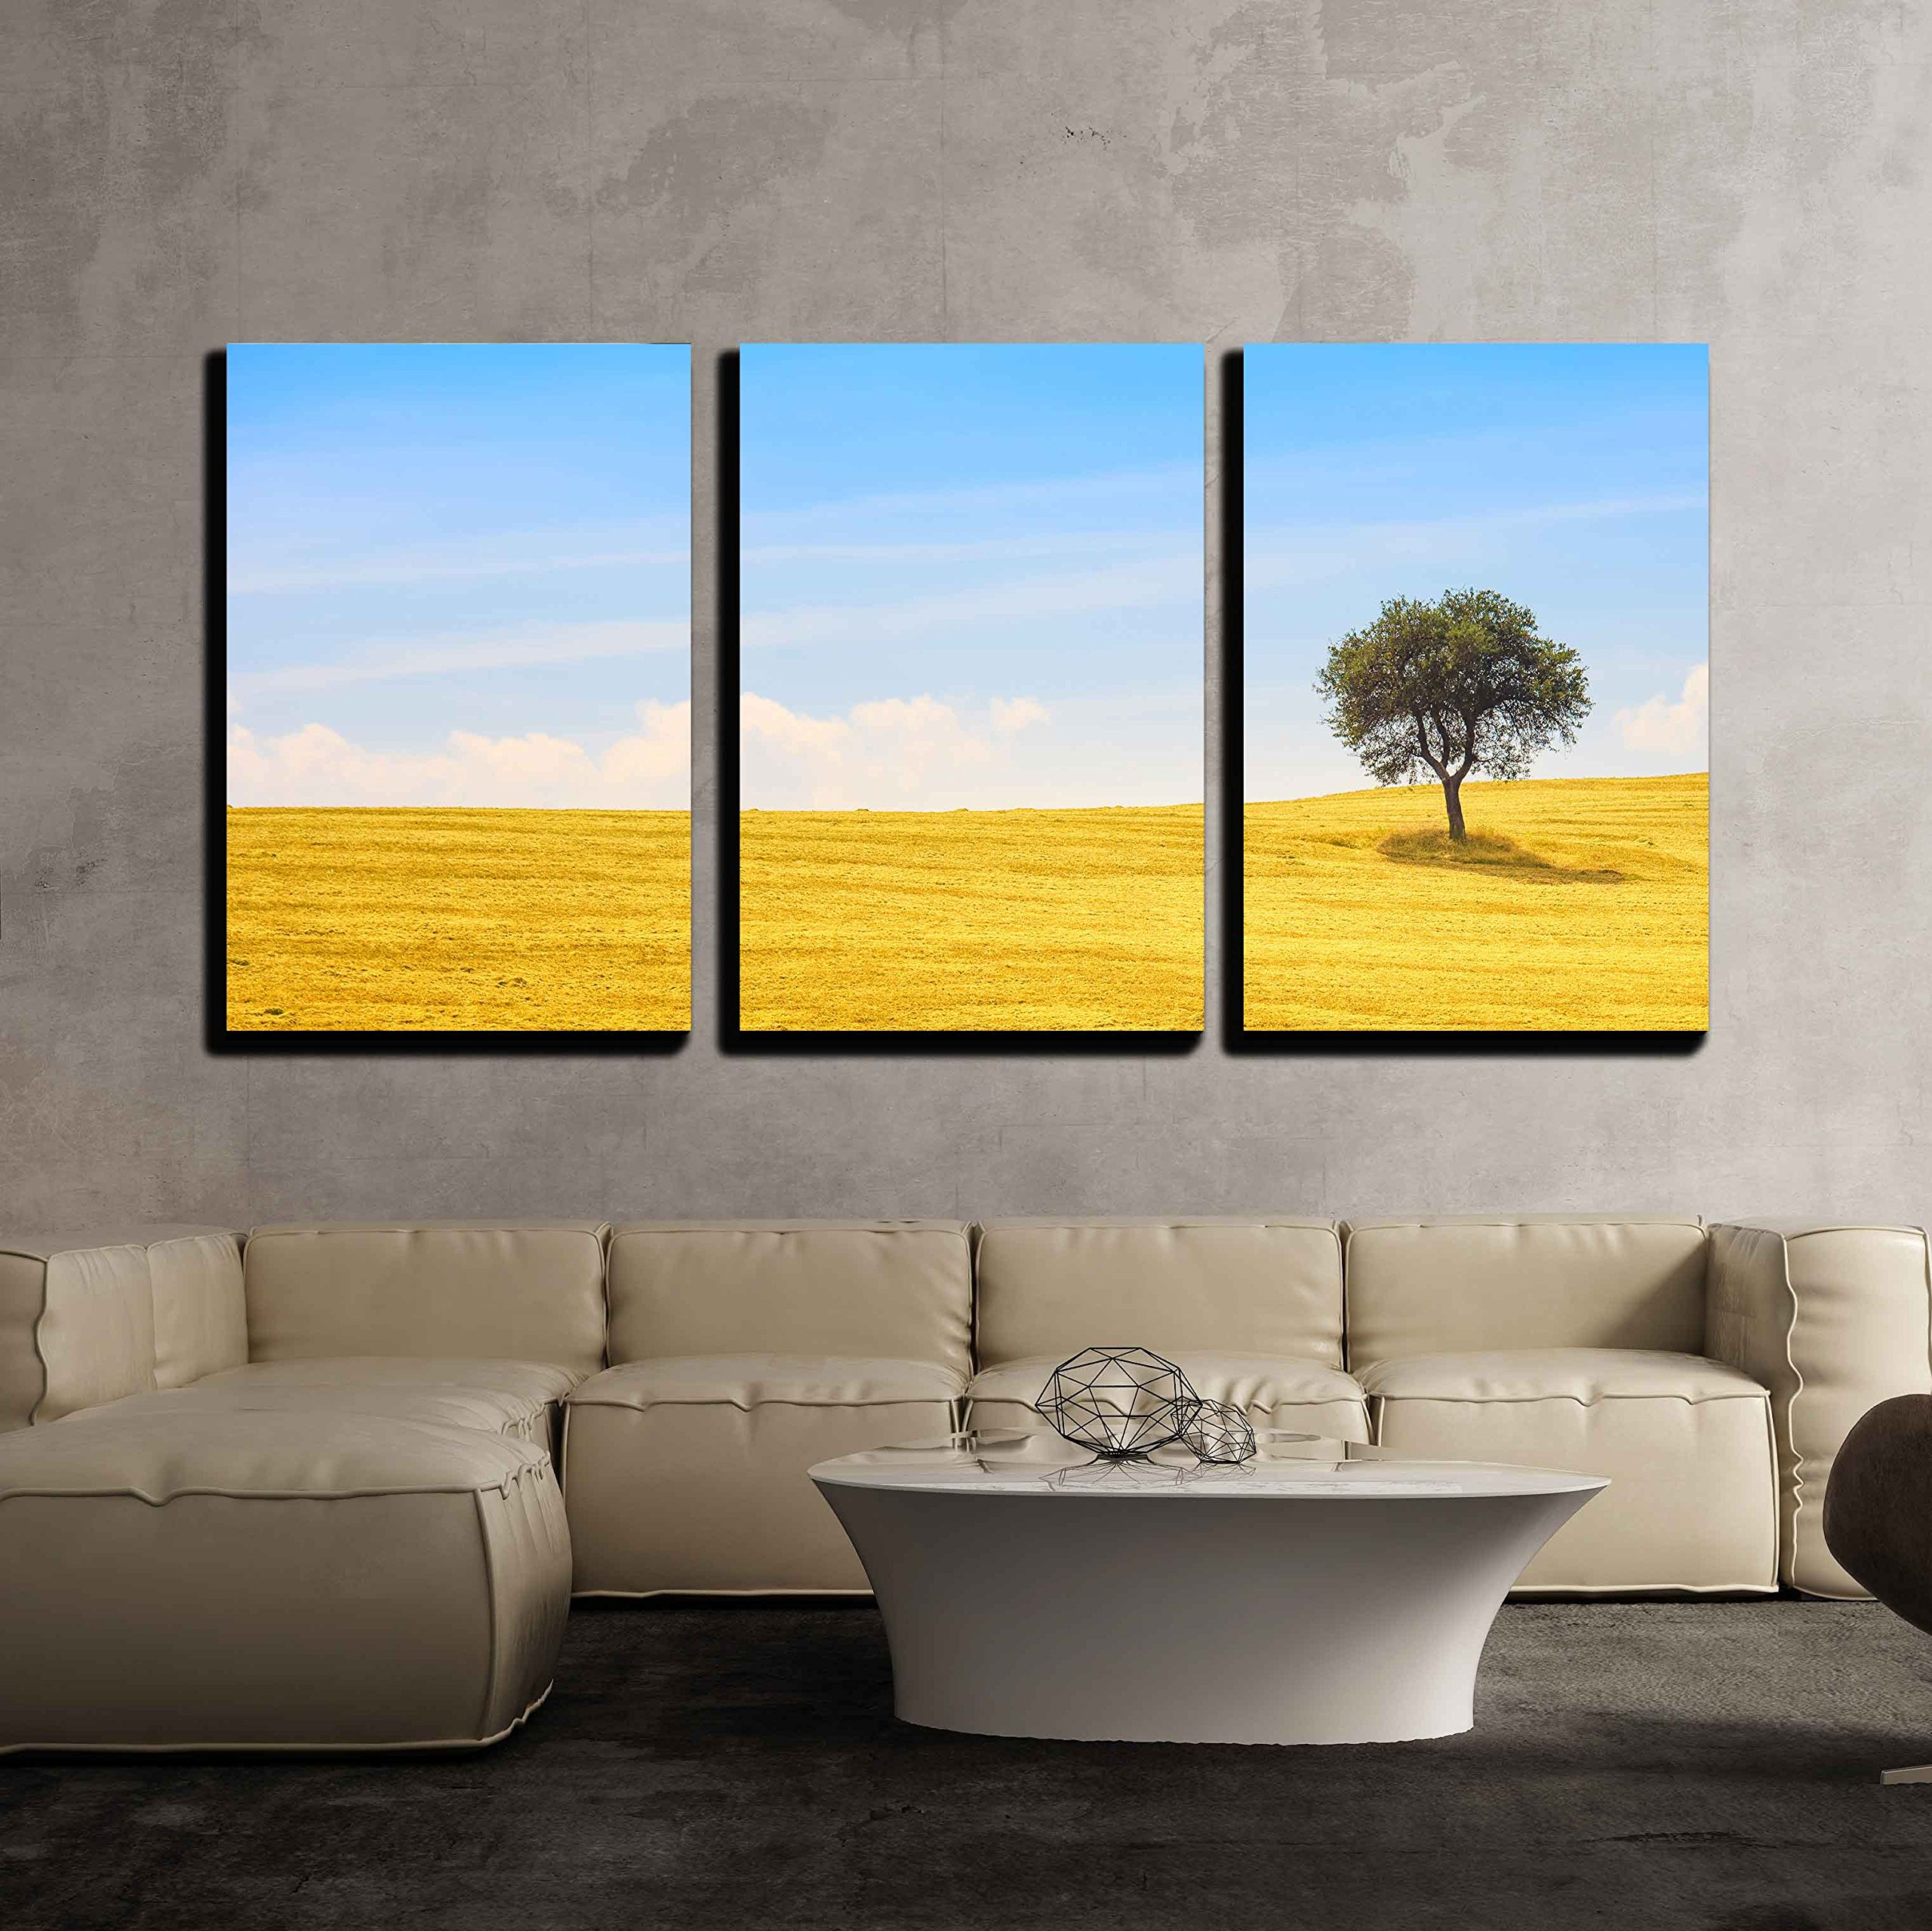 wall26 - 3 Piece Canvas Wall Art - Tuscany Country Landscape, Olive Tree and Green Fields Montalcino, Italy, Europe - Modern Home Decor Stretched and Framed Ready to Hang - 16''x24''x3 Panels